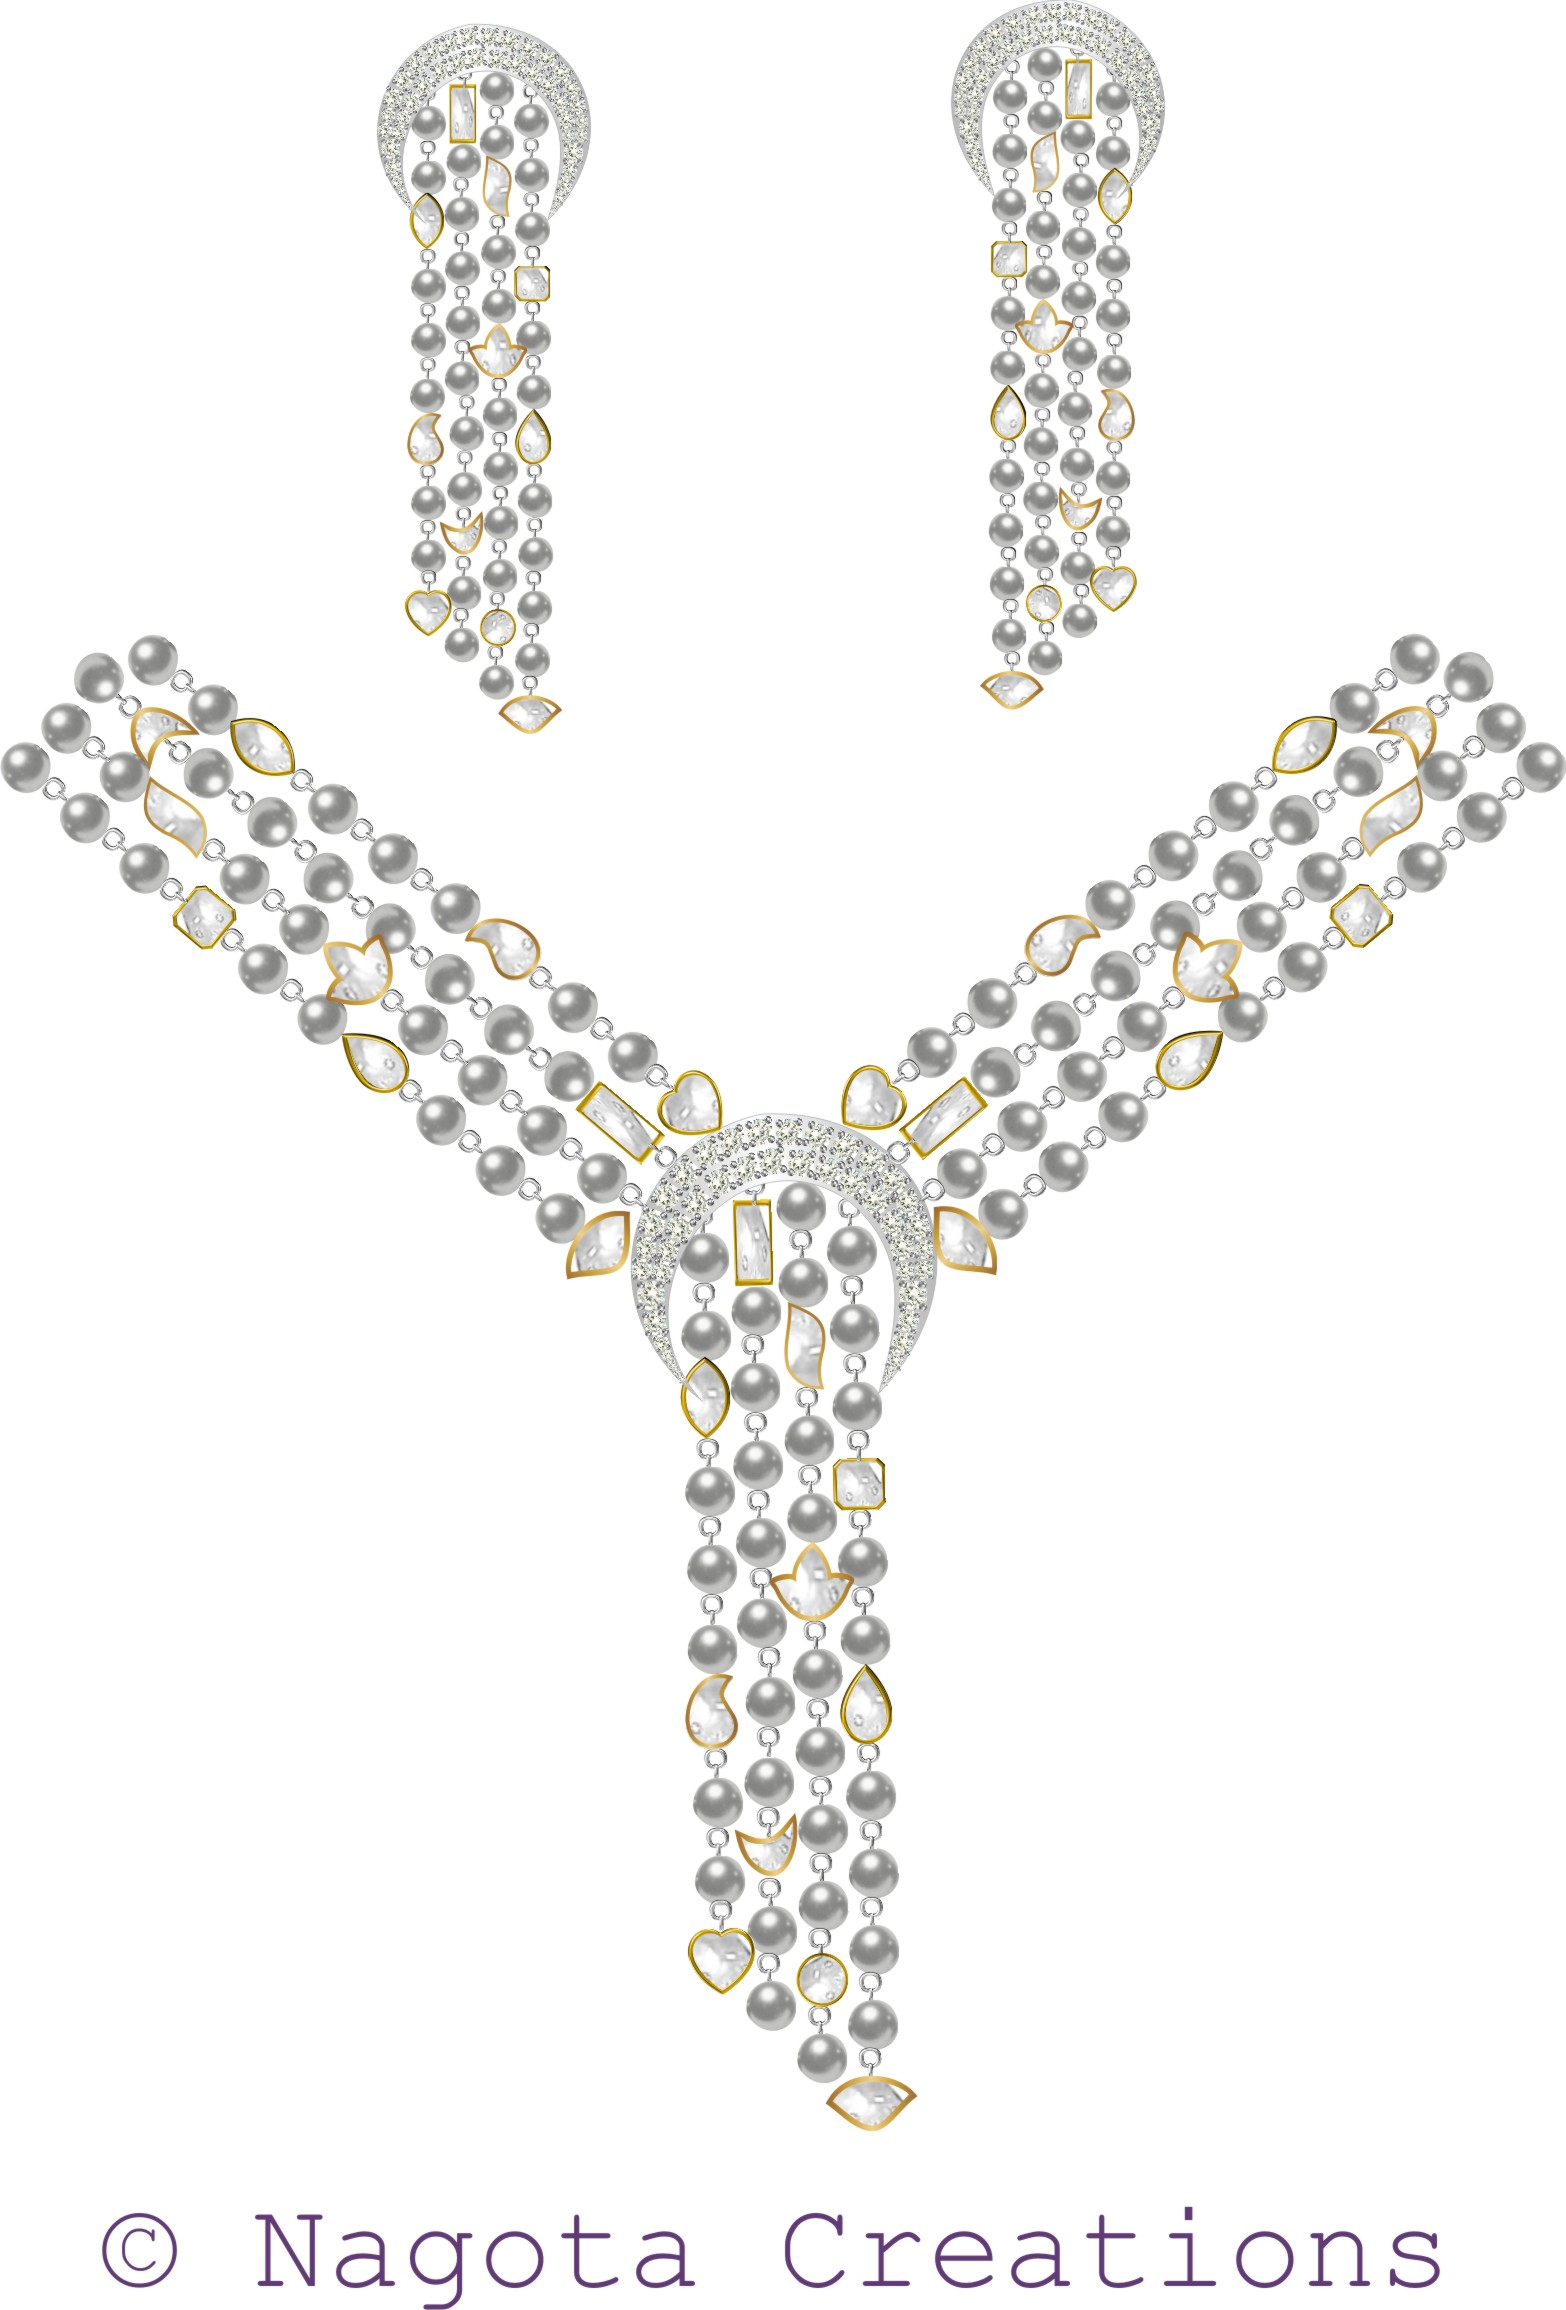 Pearl and Kundan Meena Unique Necklace Set with 18 Carat and 24 Carat